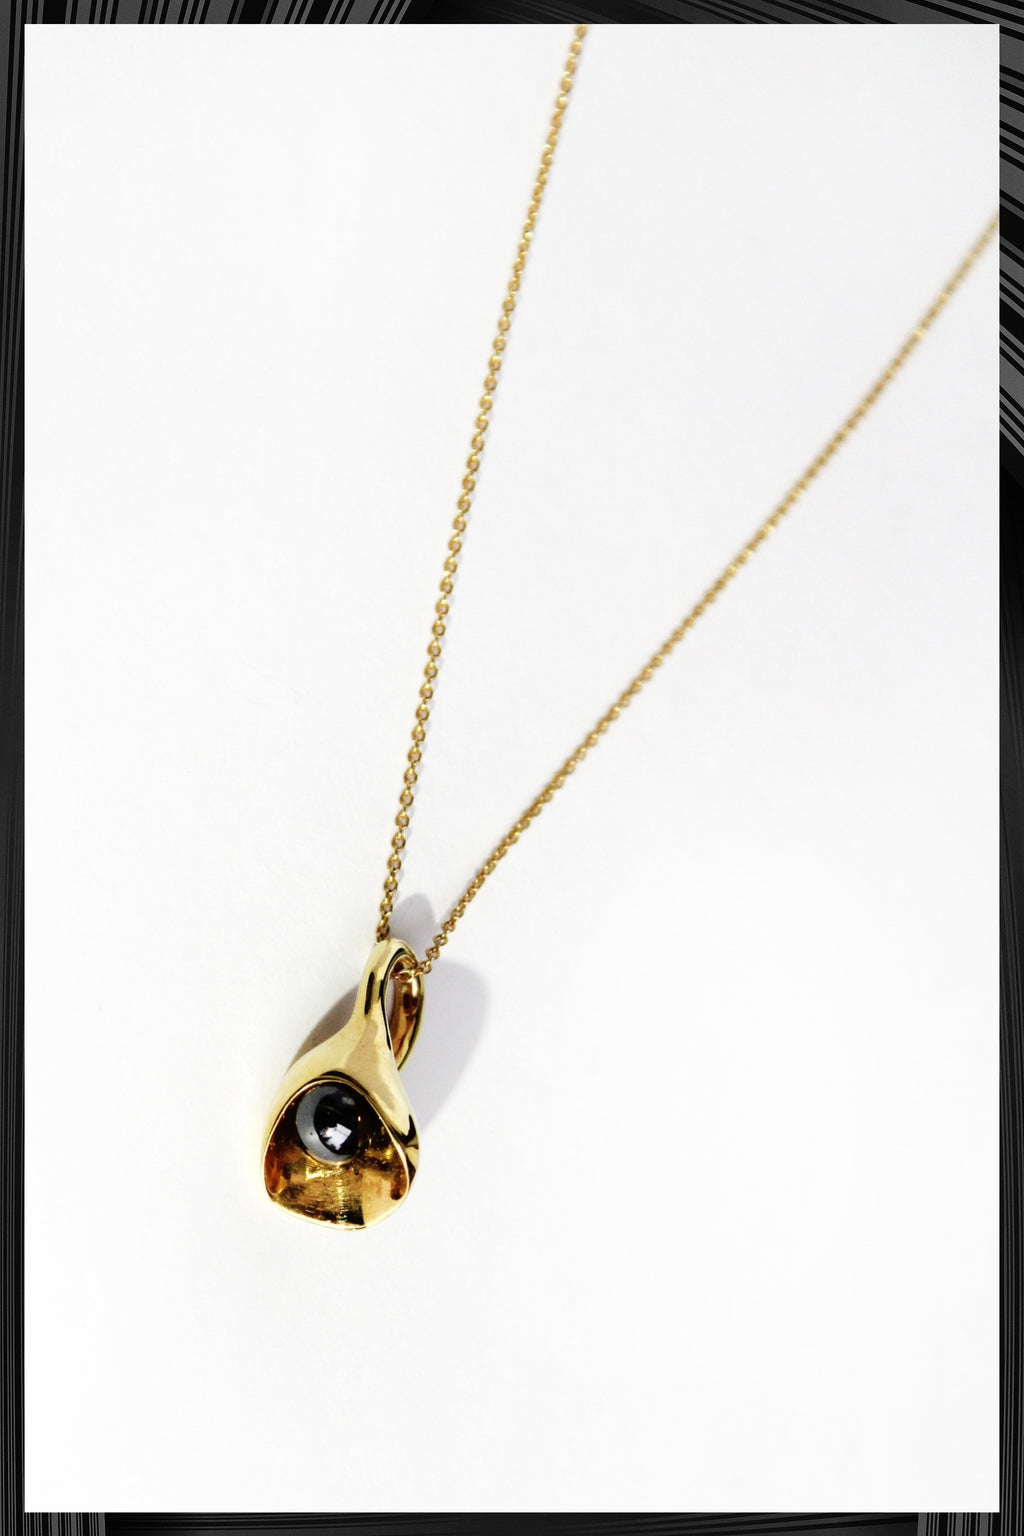 Calla Lily Pendant Necklace | Free Delivery - Quick Shipping